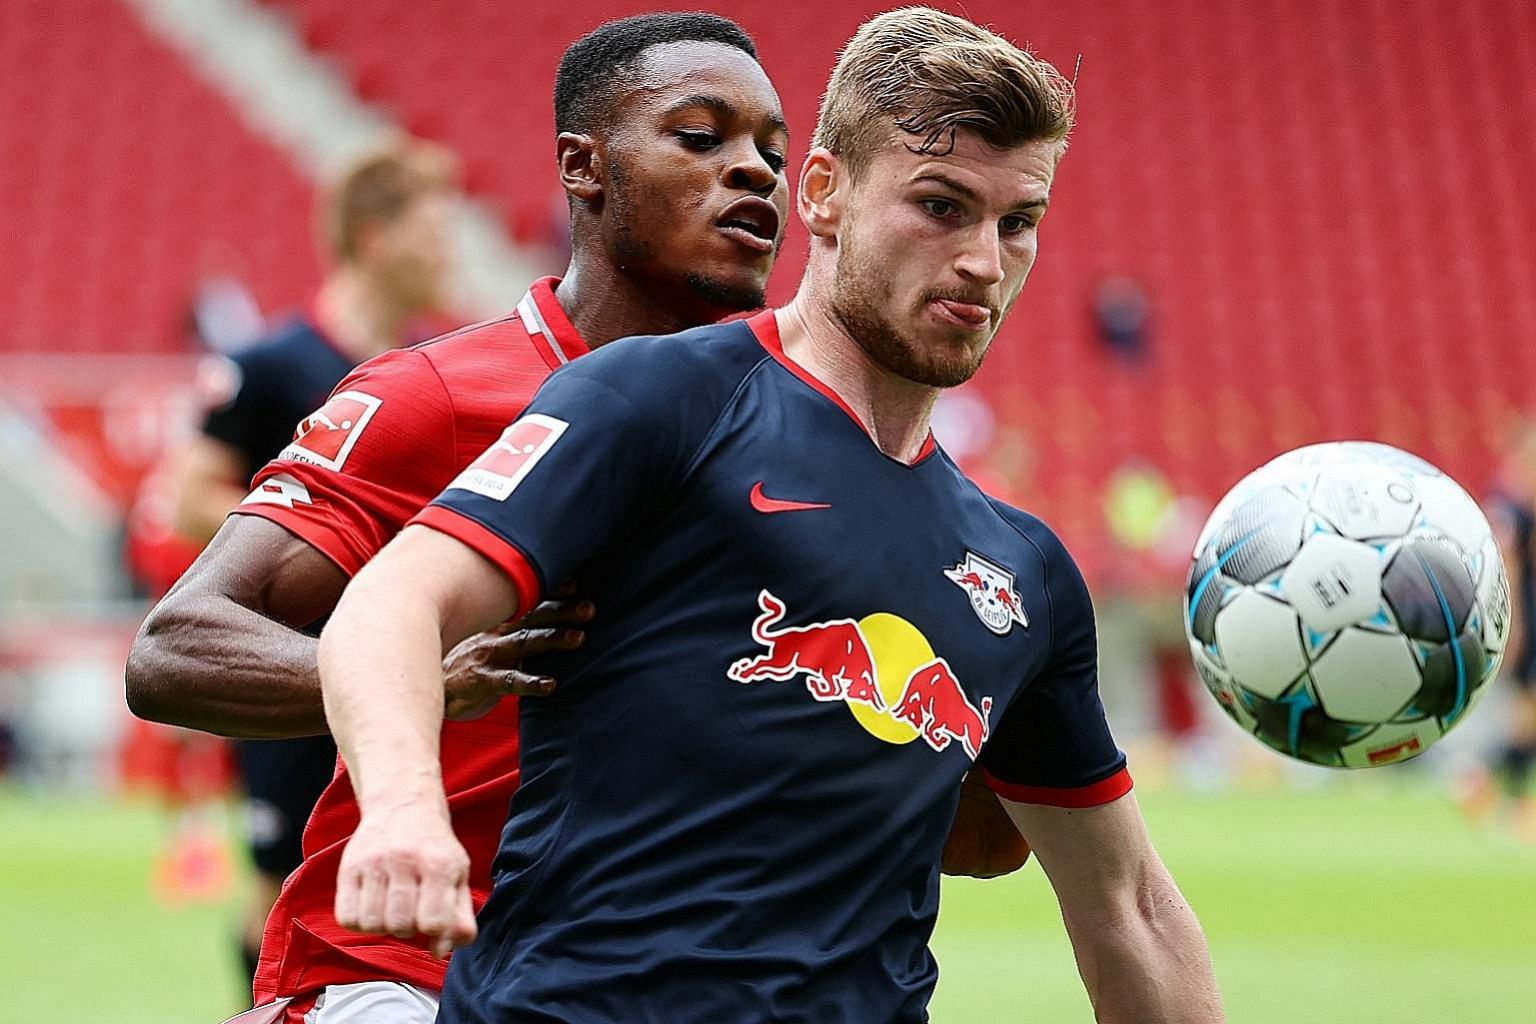 Leipzig's Timo Werner, getting some close attention from his Mainz marker Bote Baku during their match on Sunday. The Germany international netted a hat-trick in the 5-0 win to take his season's league tally to 24.